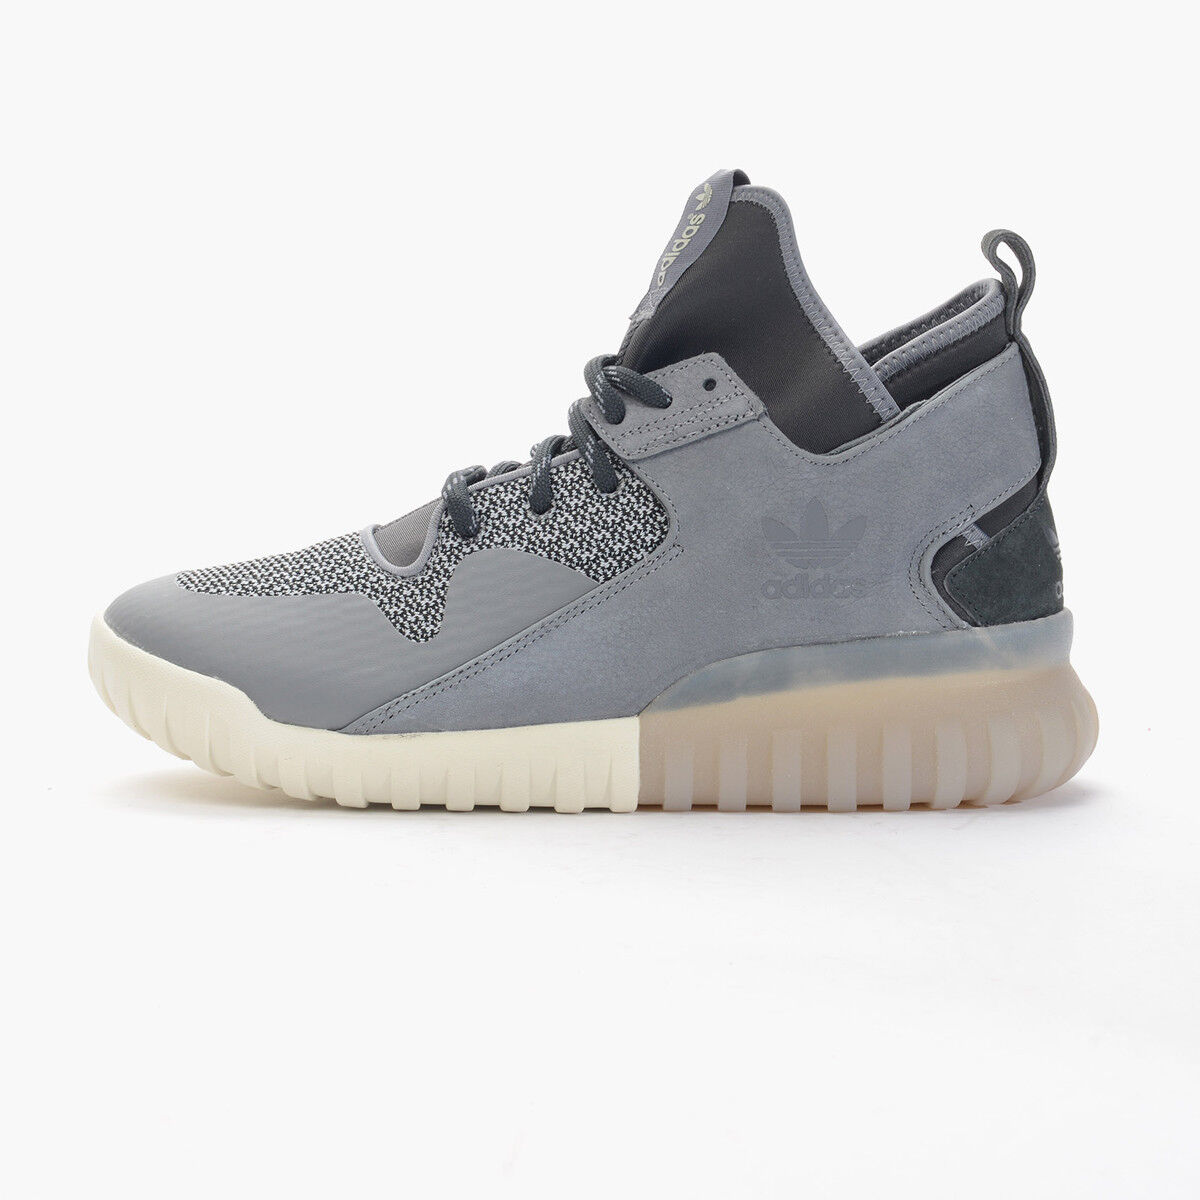 Adidas Originals Tubular x Baskets-homme-taille Baskets-homme-taille Baskets-homme-taille UK 11/US Taille 11.5 5a90d6